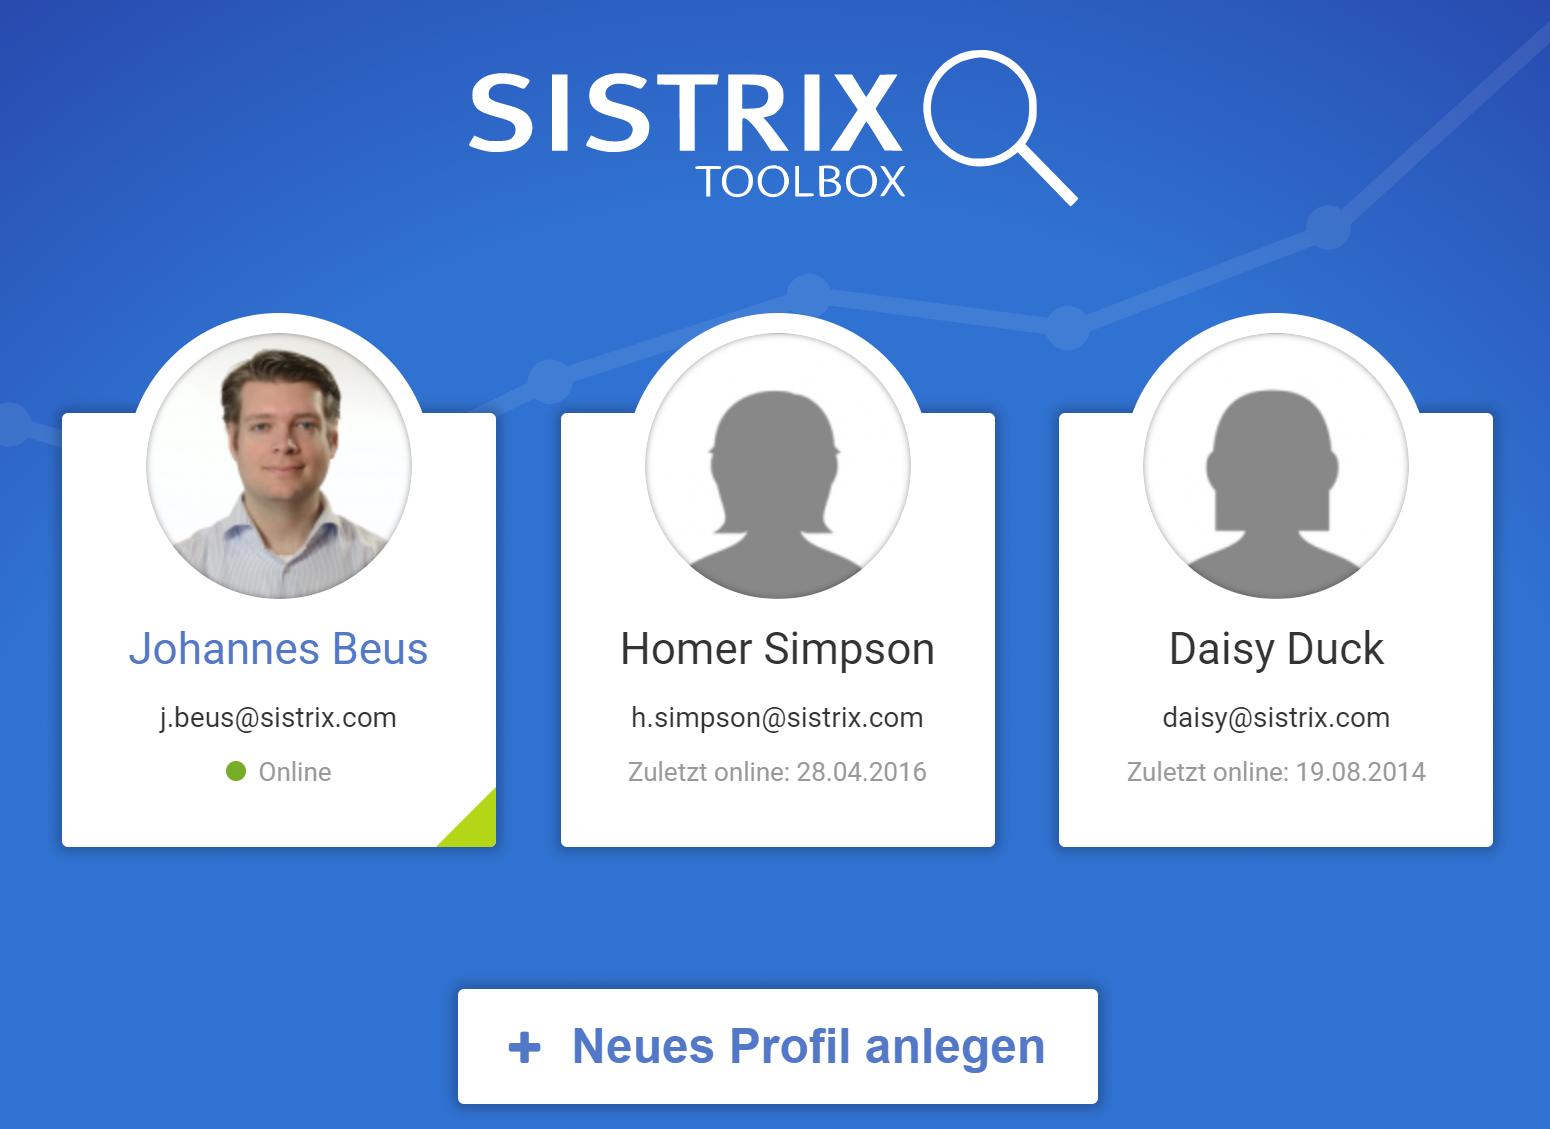 Profiles for your co-workers in the SISTRIX Toolbox - SISTRIX